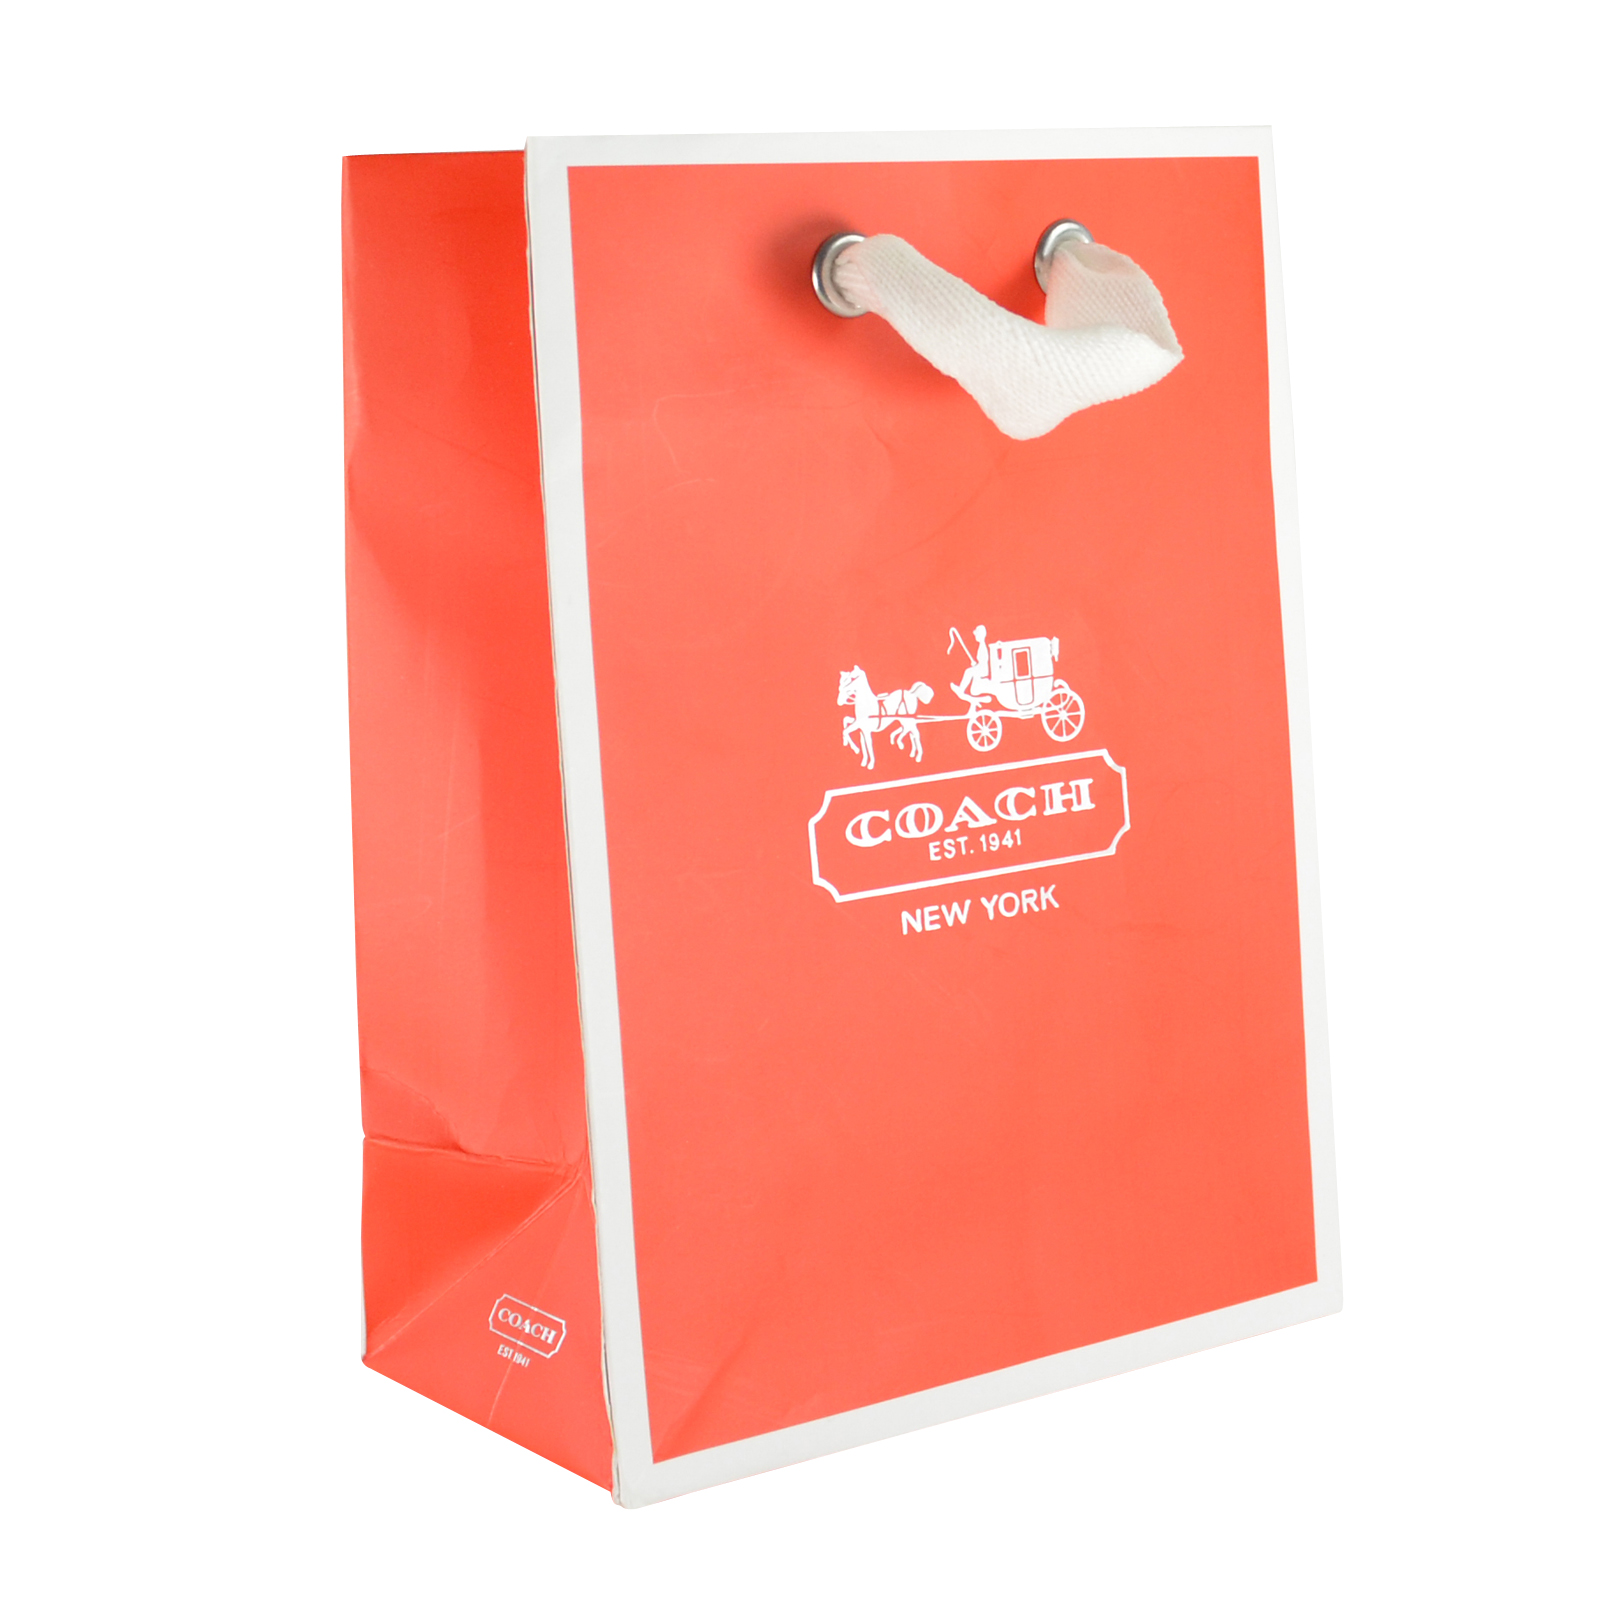 Paper gift bags with logo